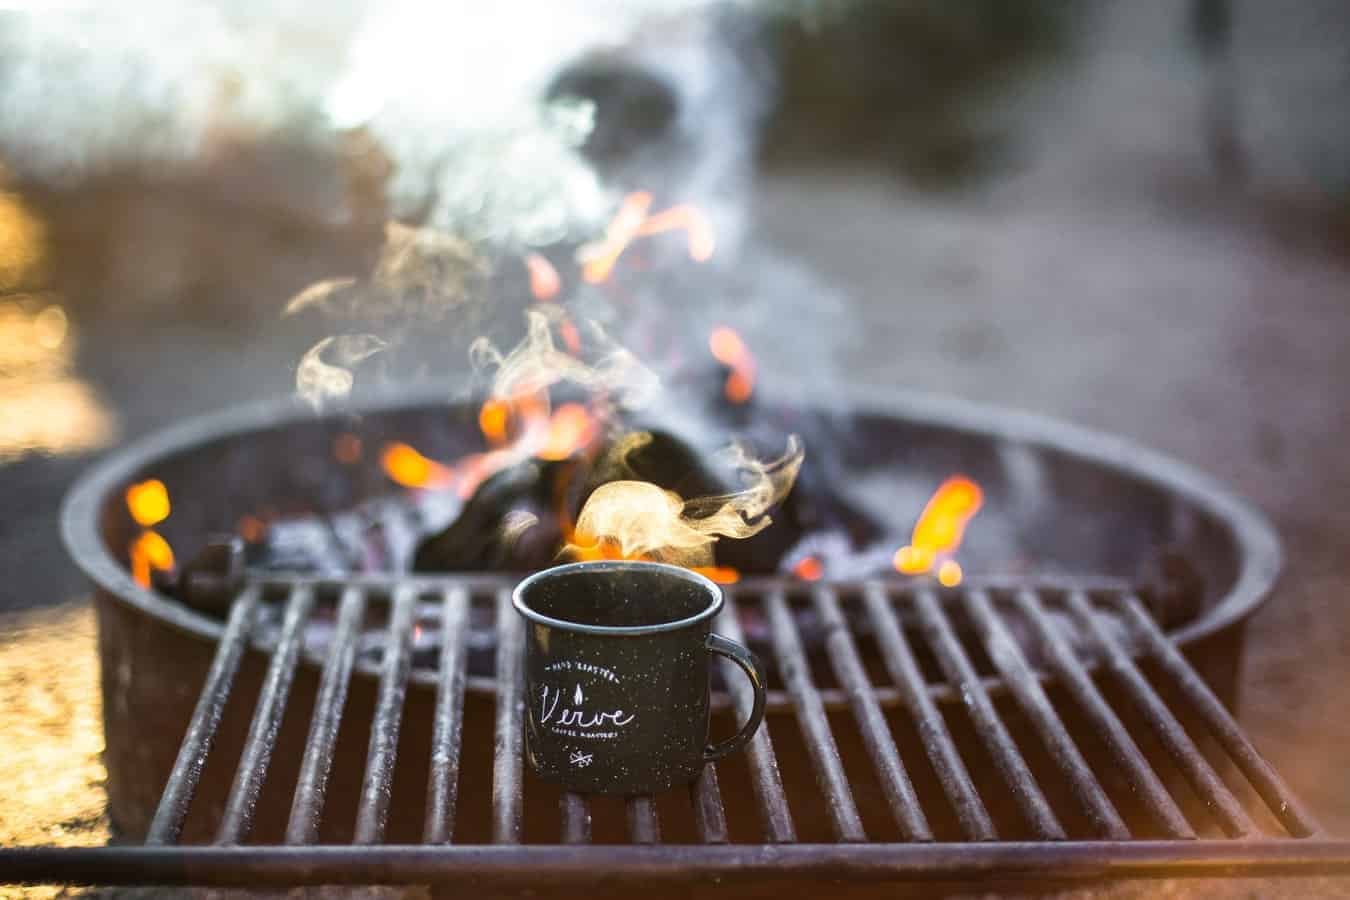 A black mug on a grill in front of a smoking barbecue